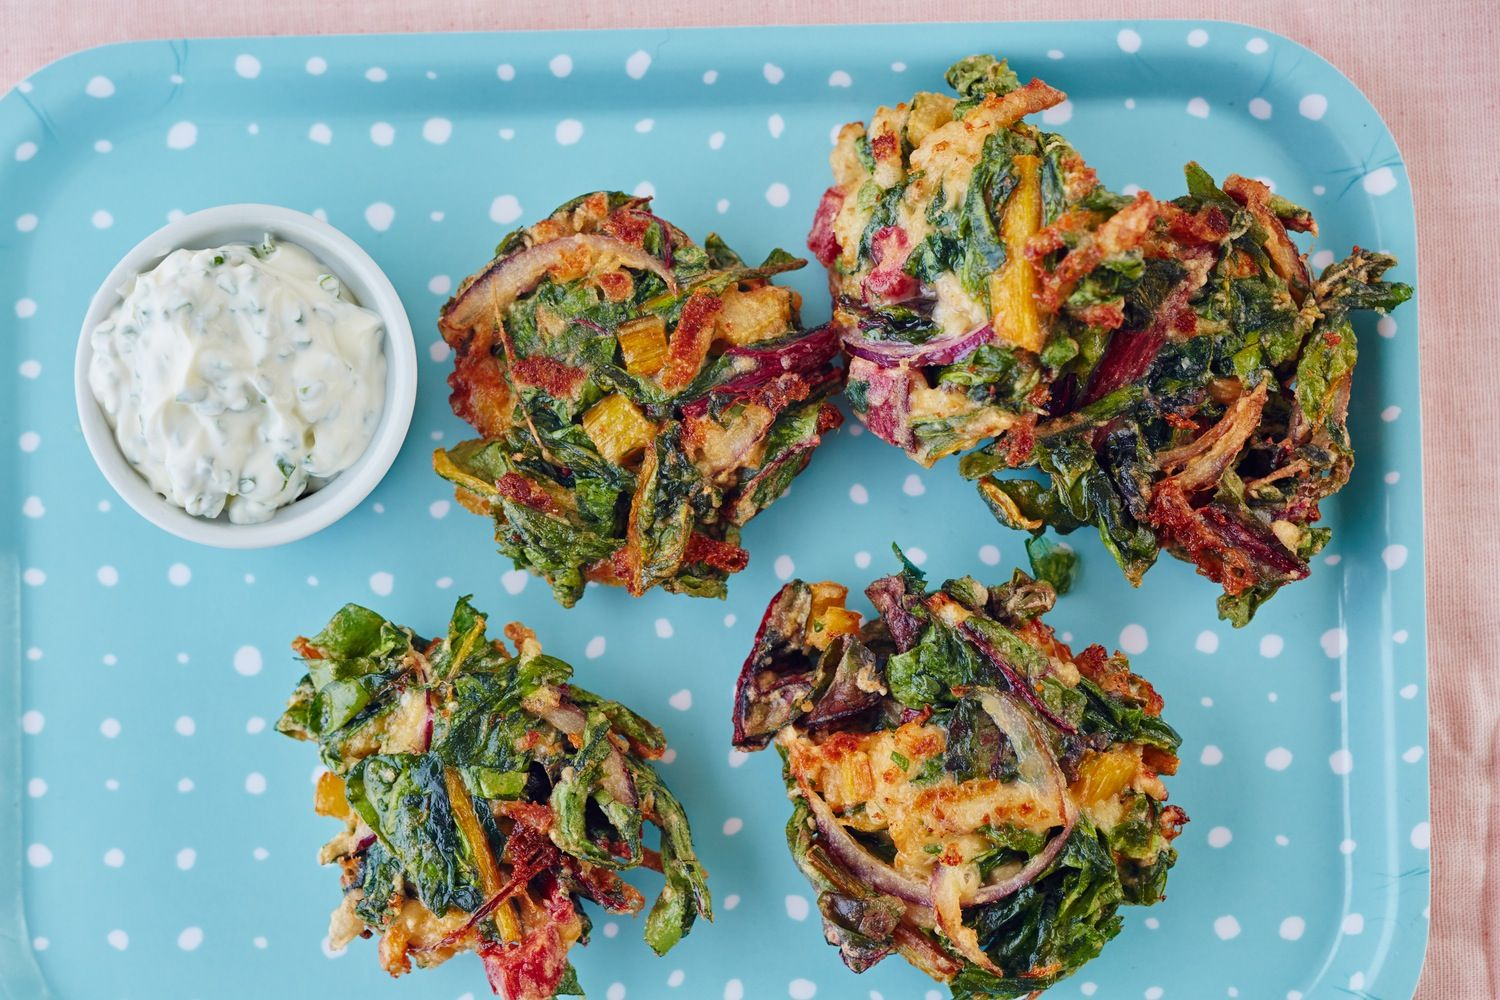 How To Make Fritters Out of Any Vegetable — Cooking Lessons from The Kitchn